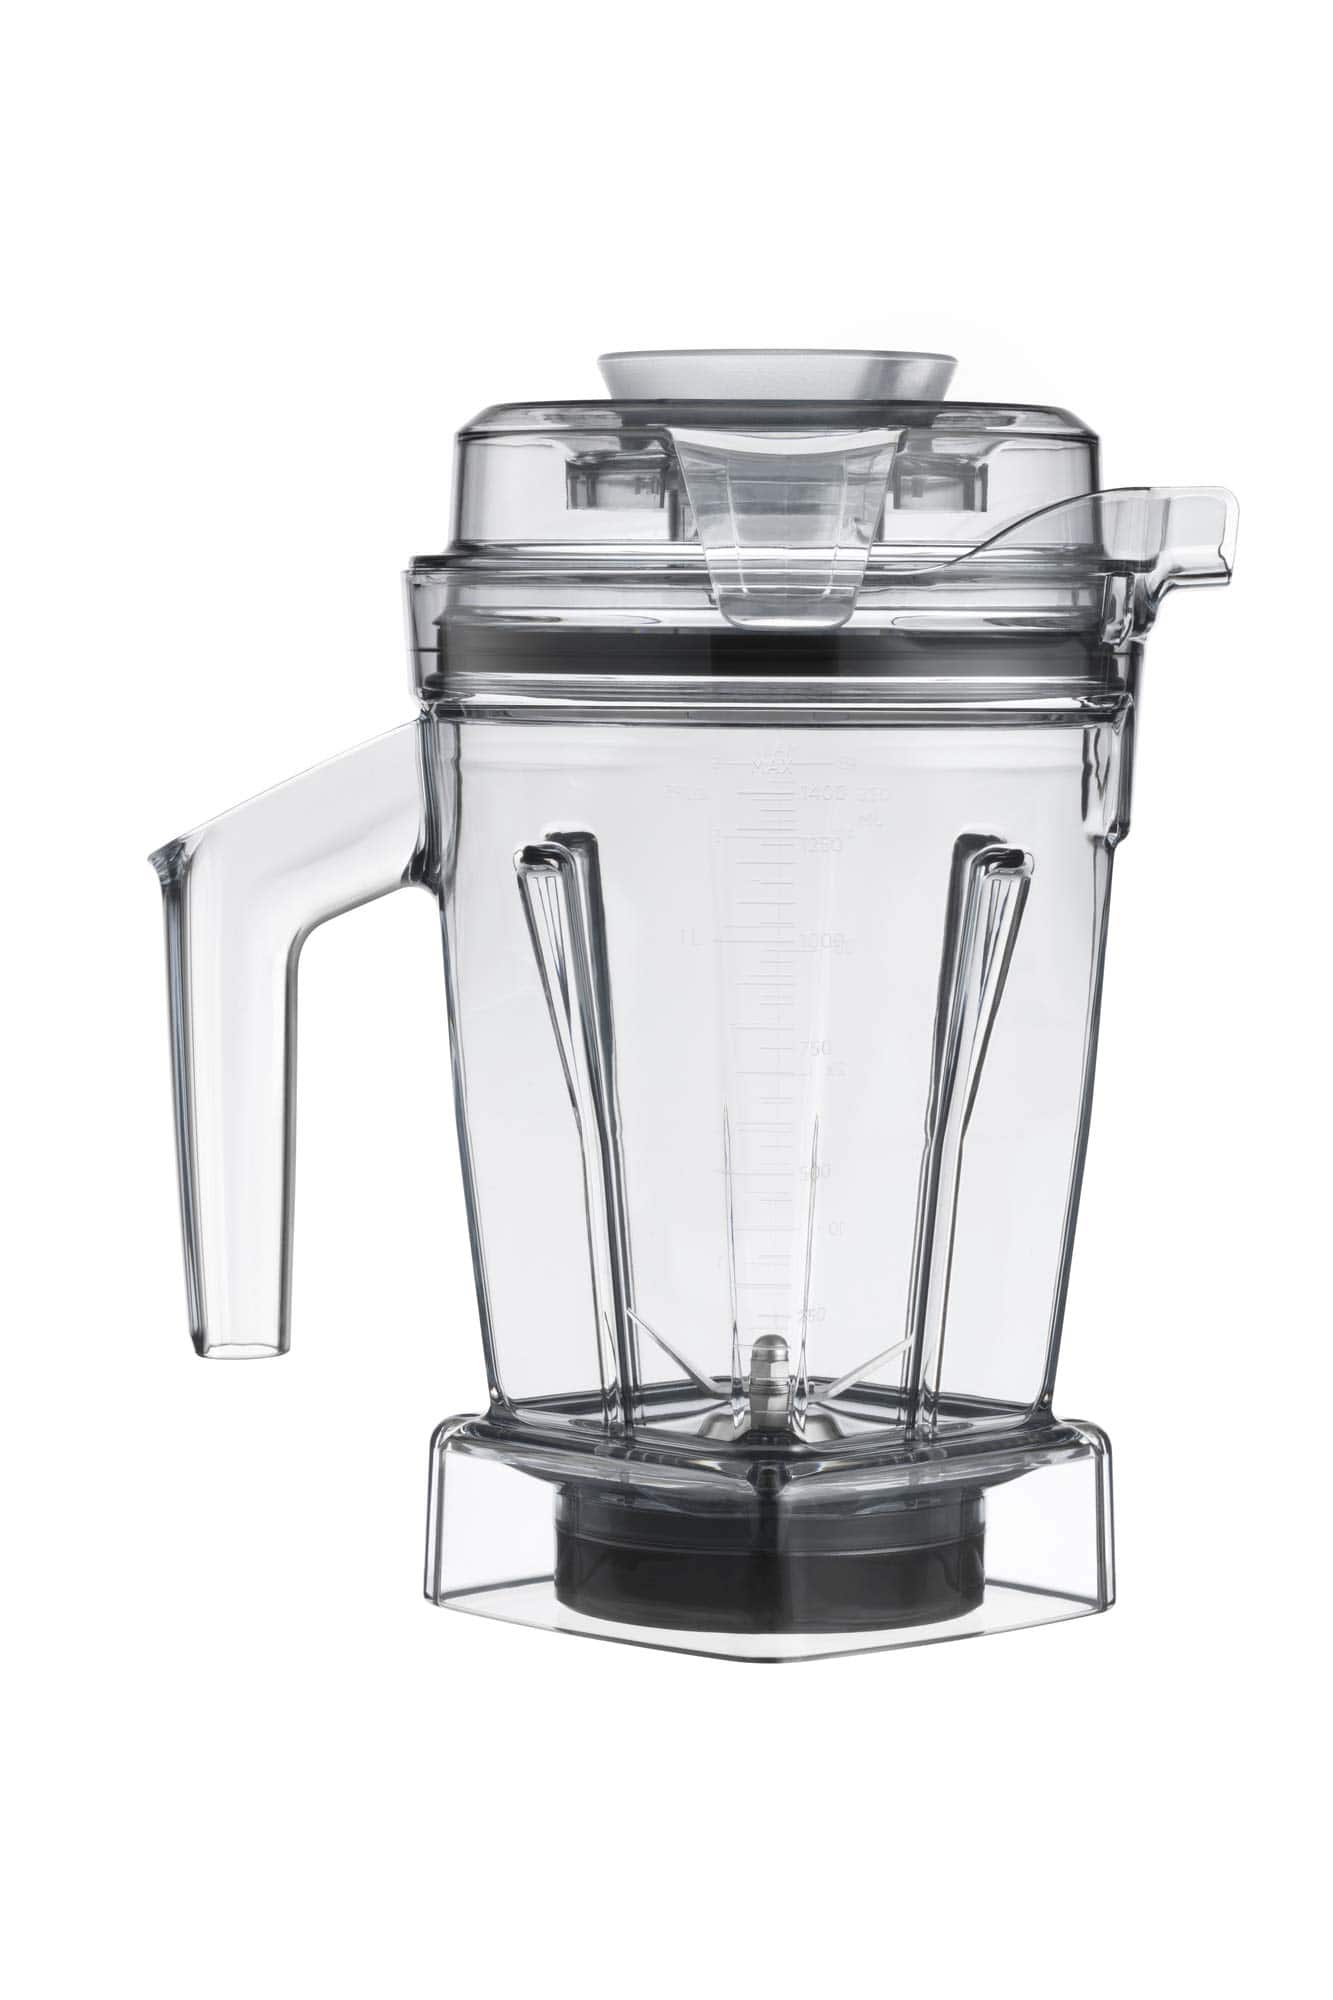 Vitamix Ascent Series Dry Grains Container, 48 oz. with SELF-DETECT $104.45 at Amazon